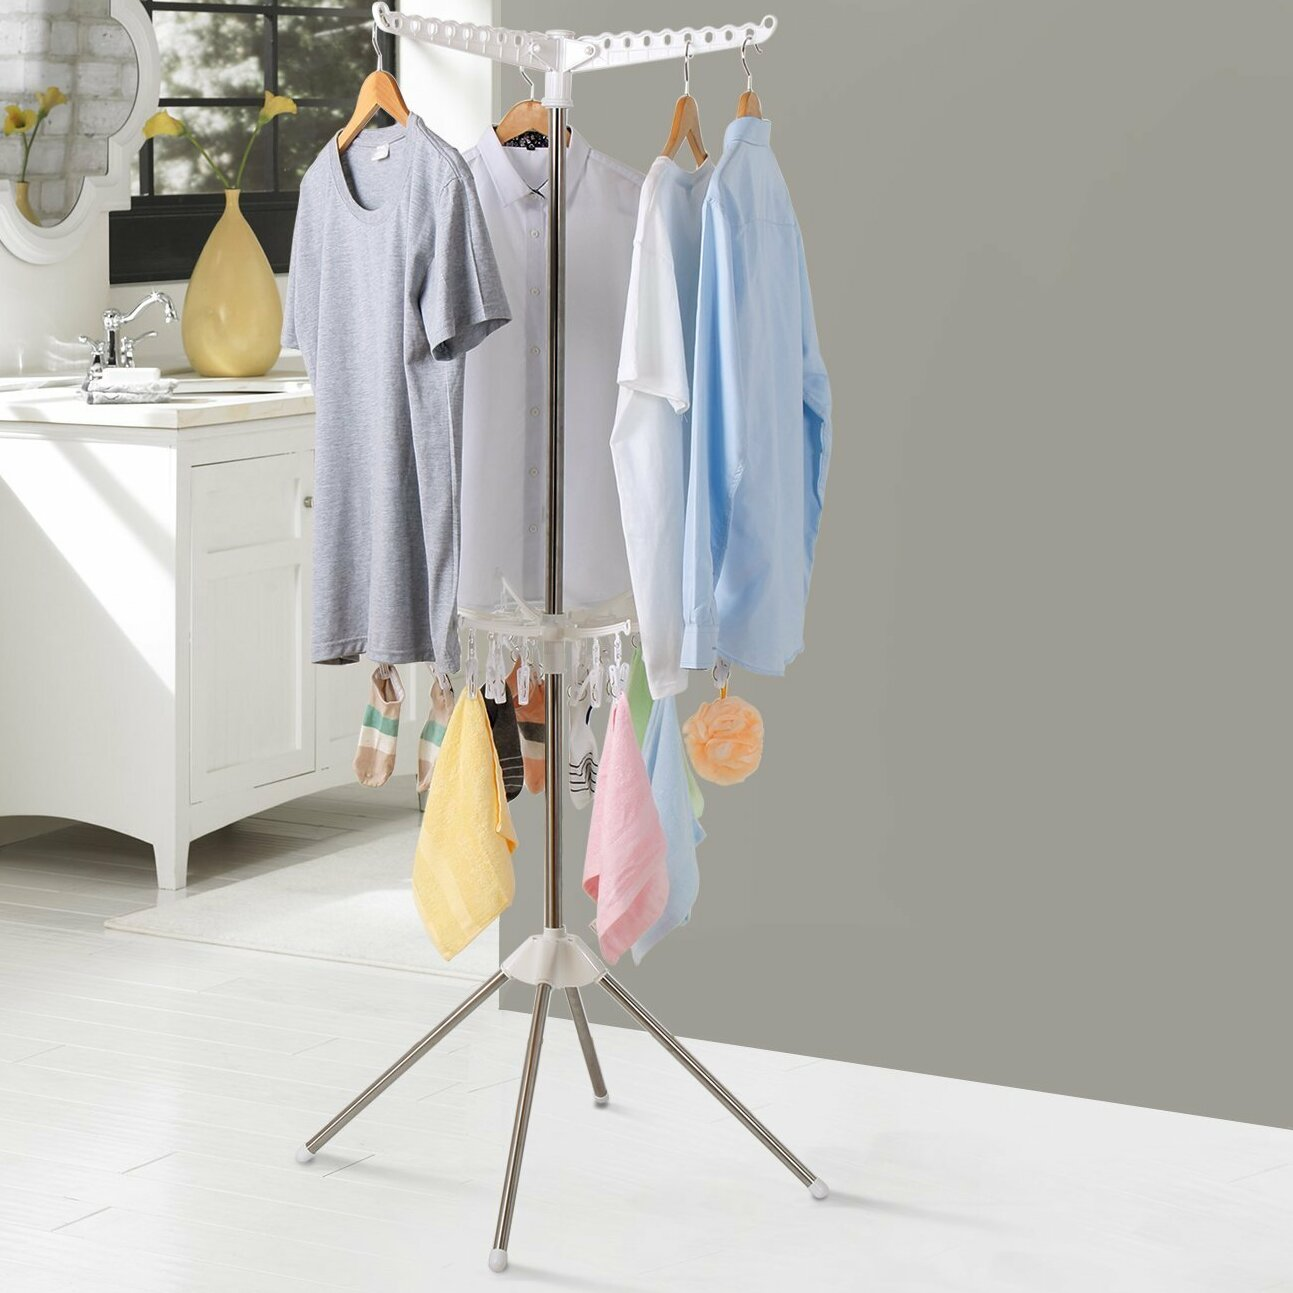 Lifewit Collapsible 2 Tier Clothes Free Standing Drying Rack Hanger Multifunction Stand Reviews Wayfair